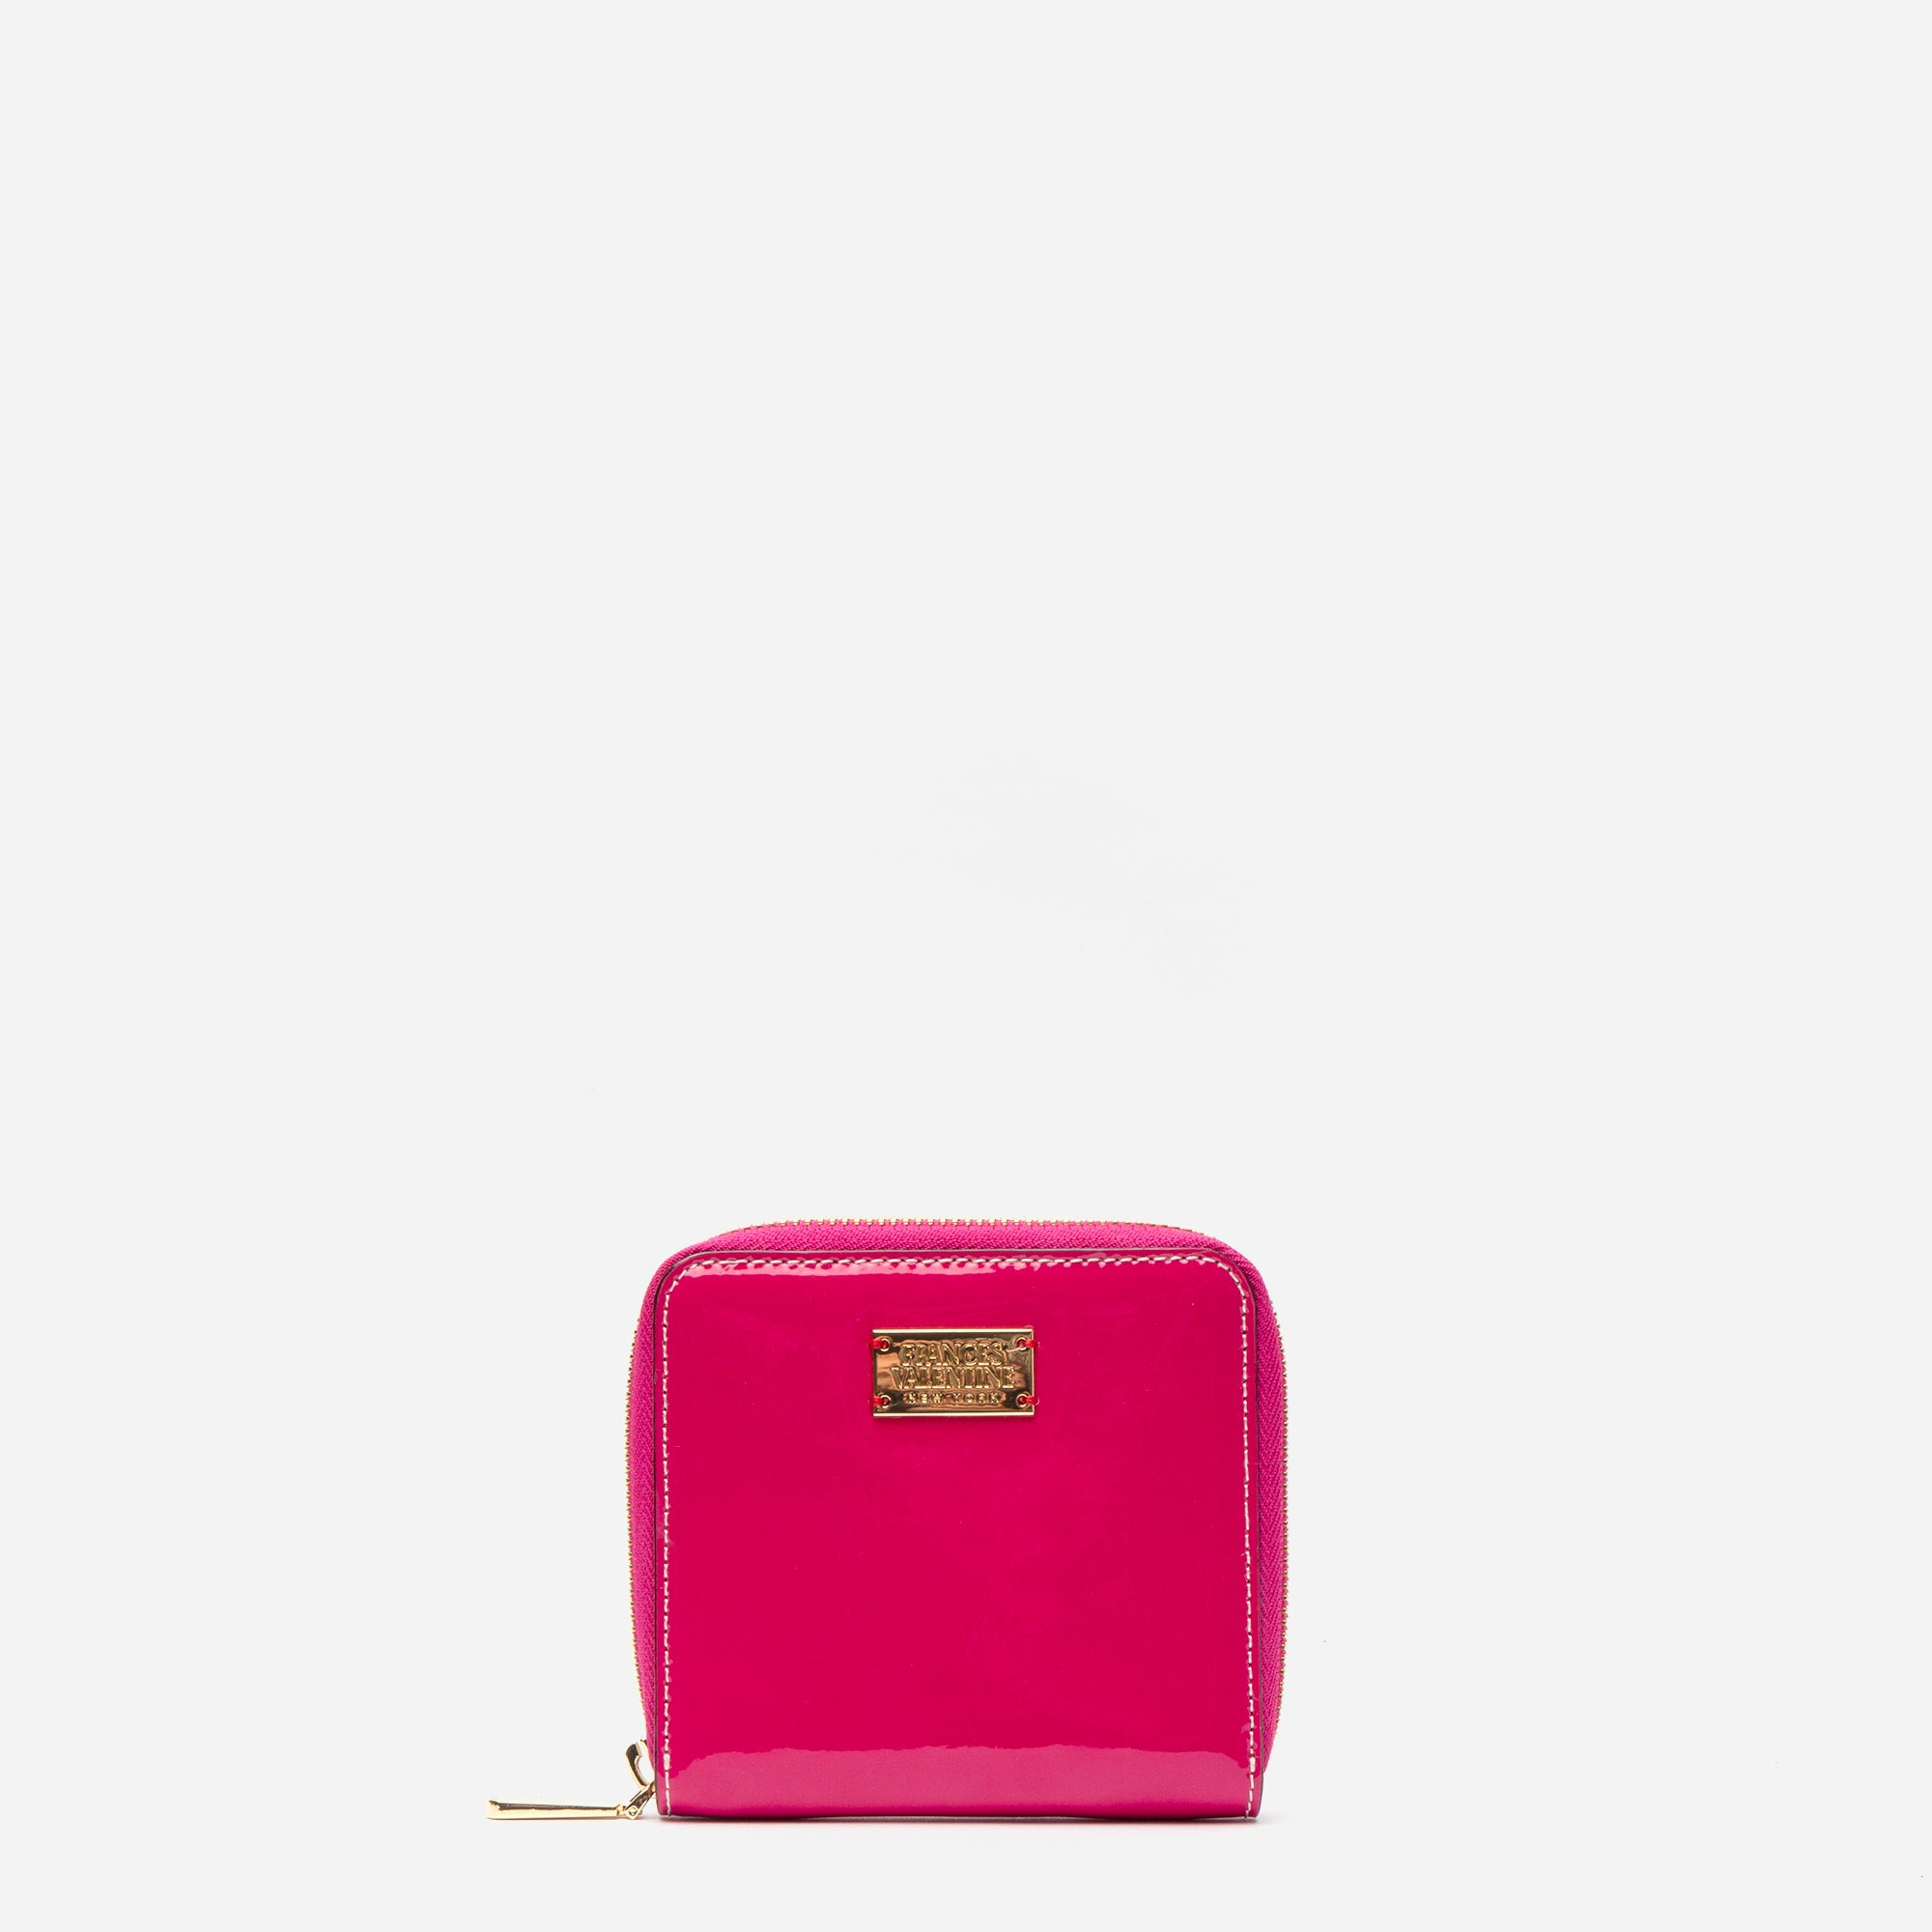 Roosevelt Small Zip Wallet Soft Patent Pink Oyster - Frances Valentine